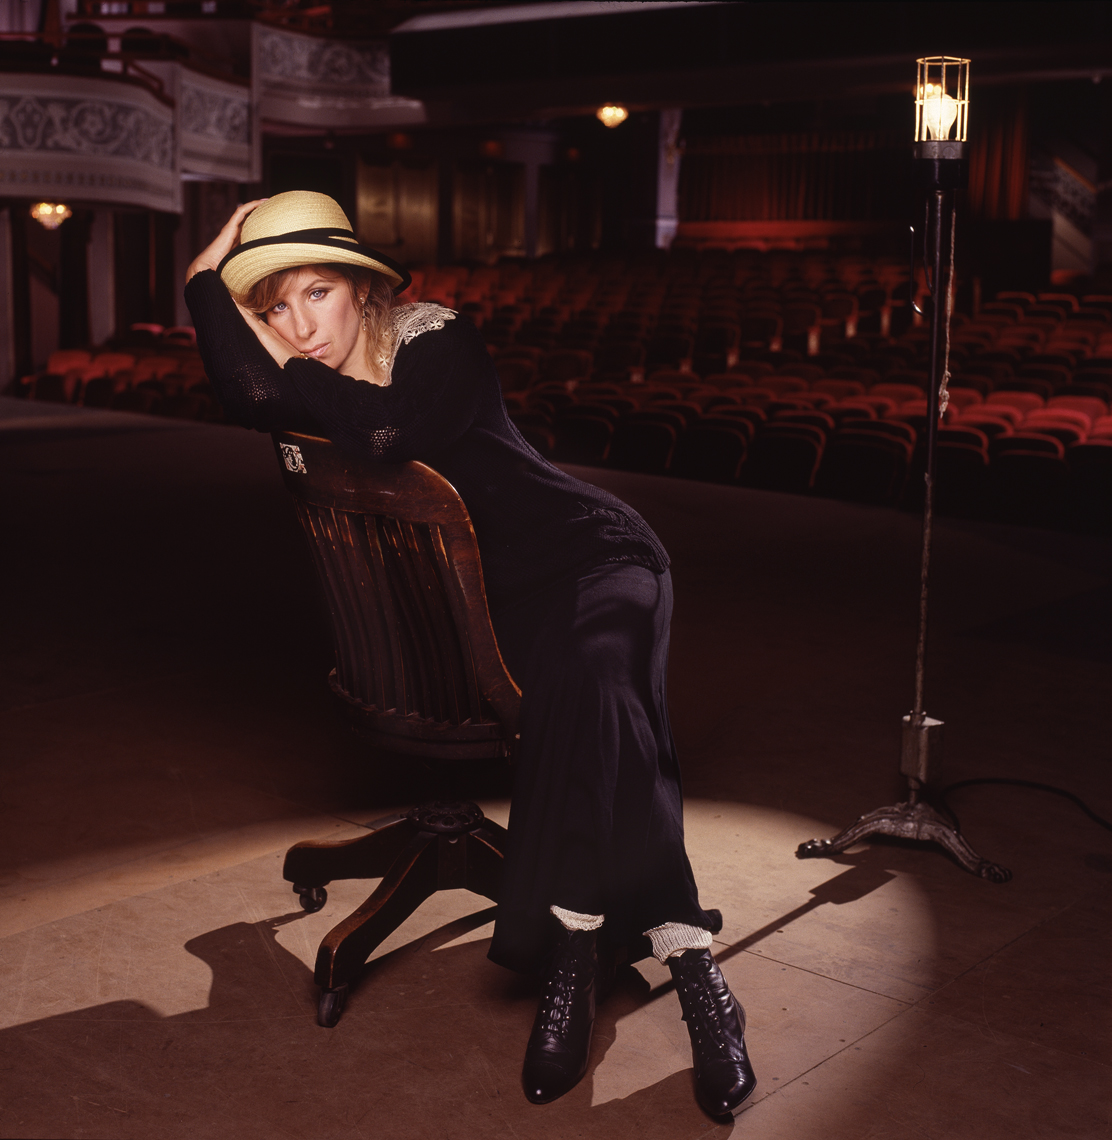 barbara_streisand_broadway_album_being_retouched.jpg